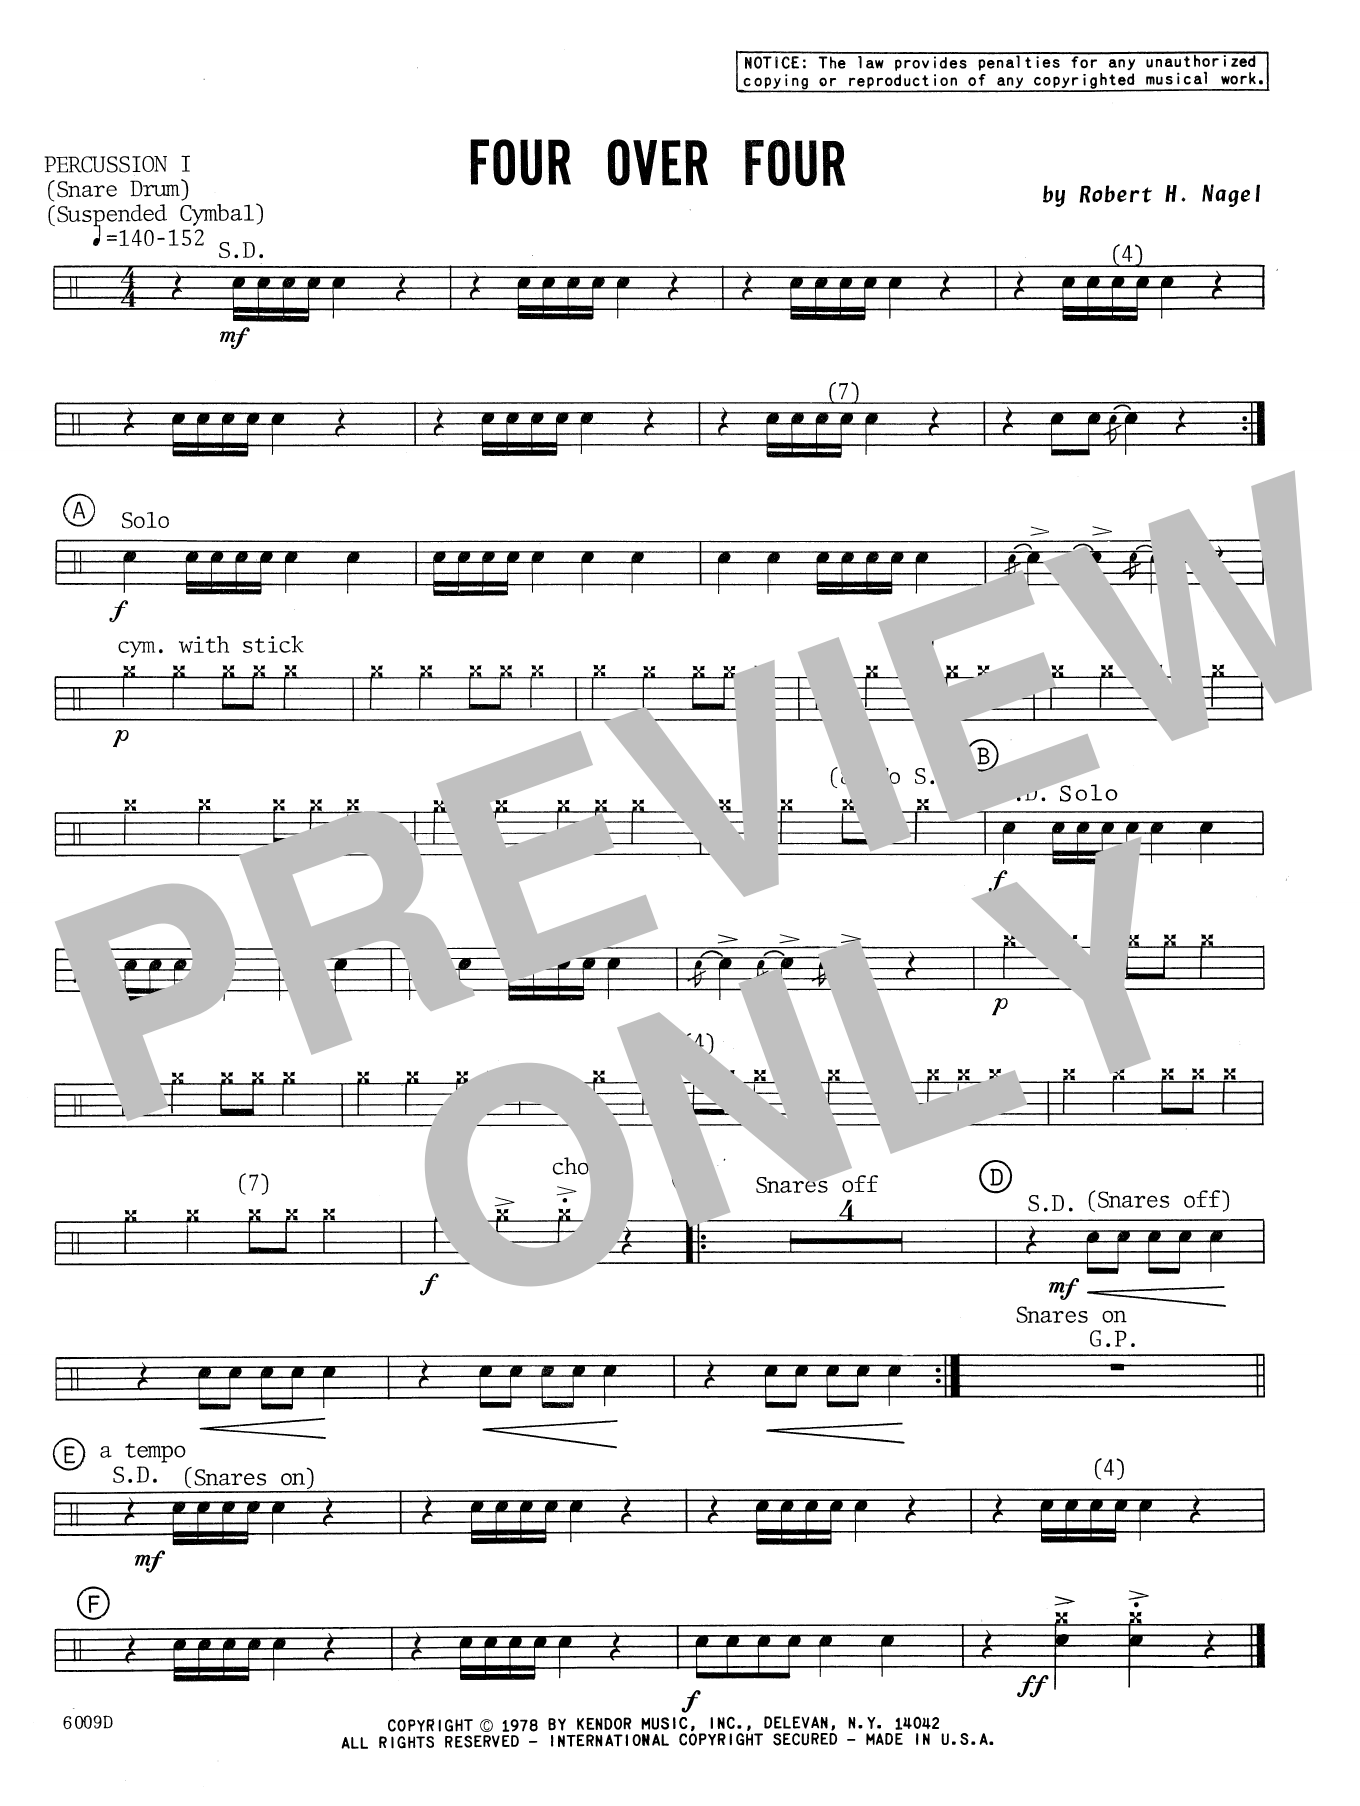 Four Over Four - Percussion 1 Sheet Music